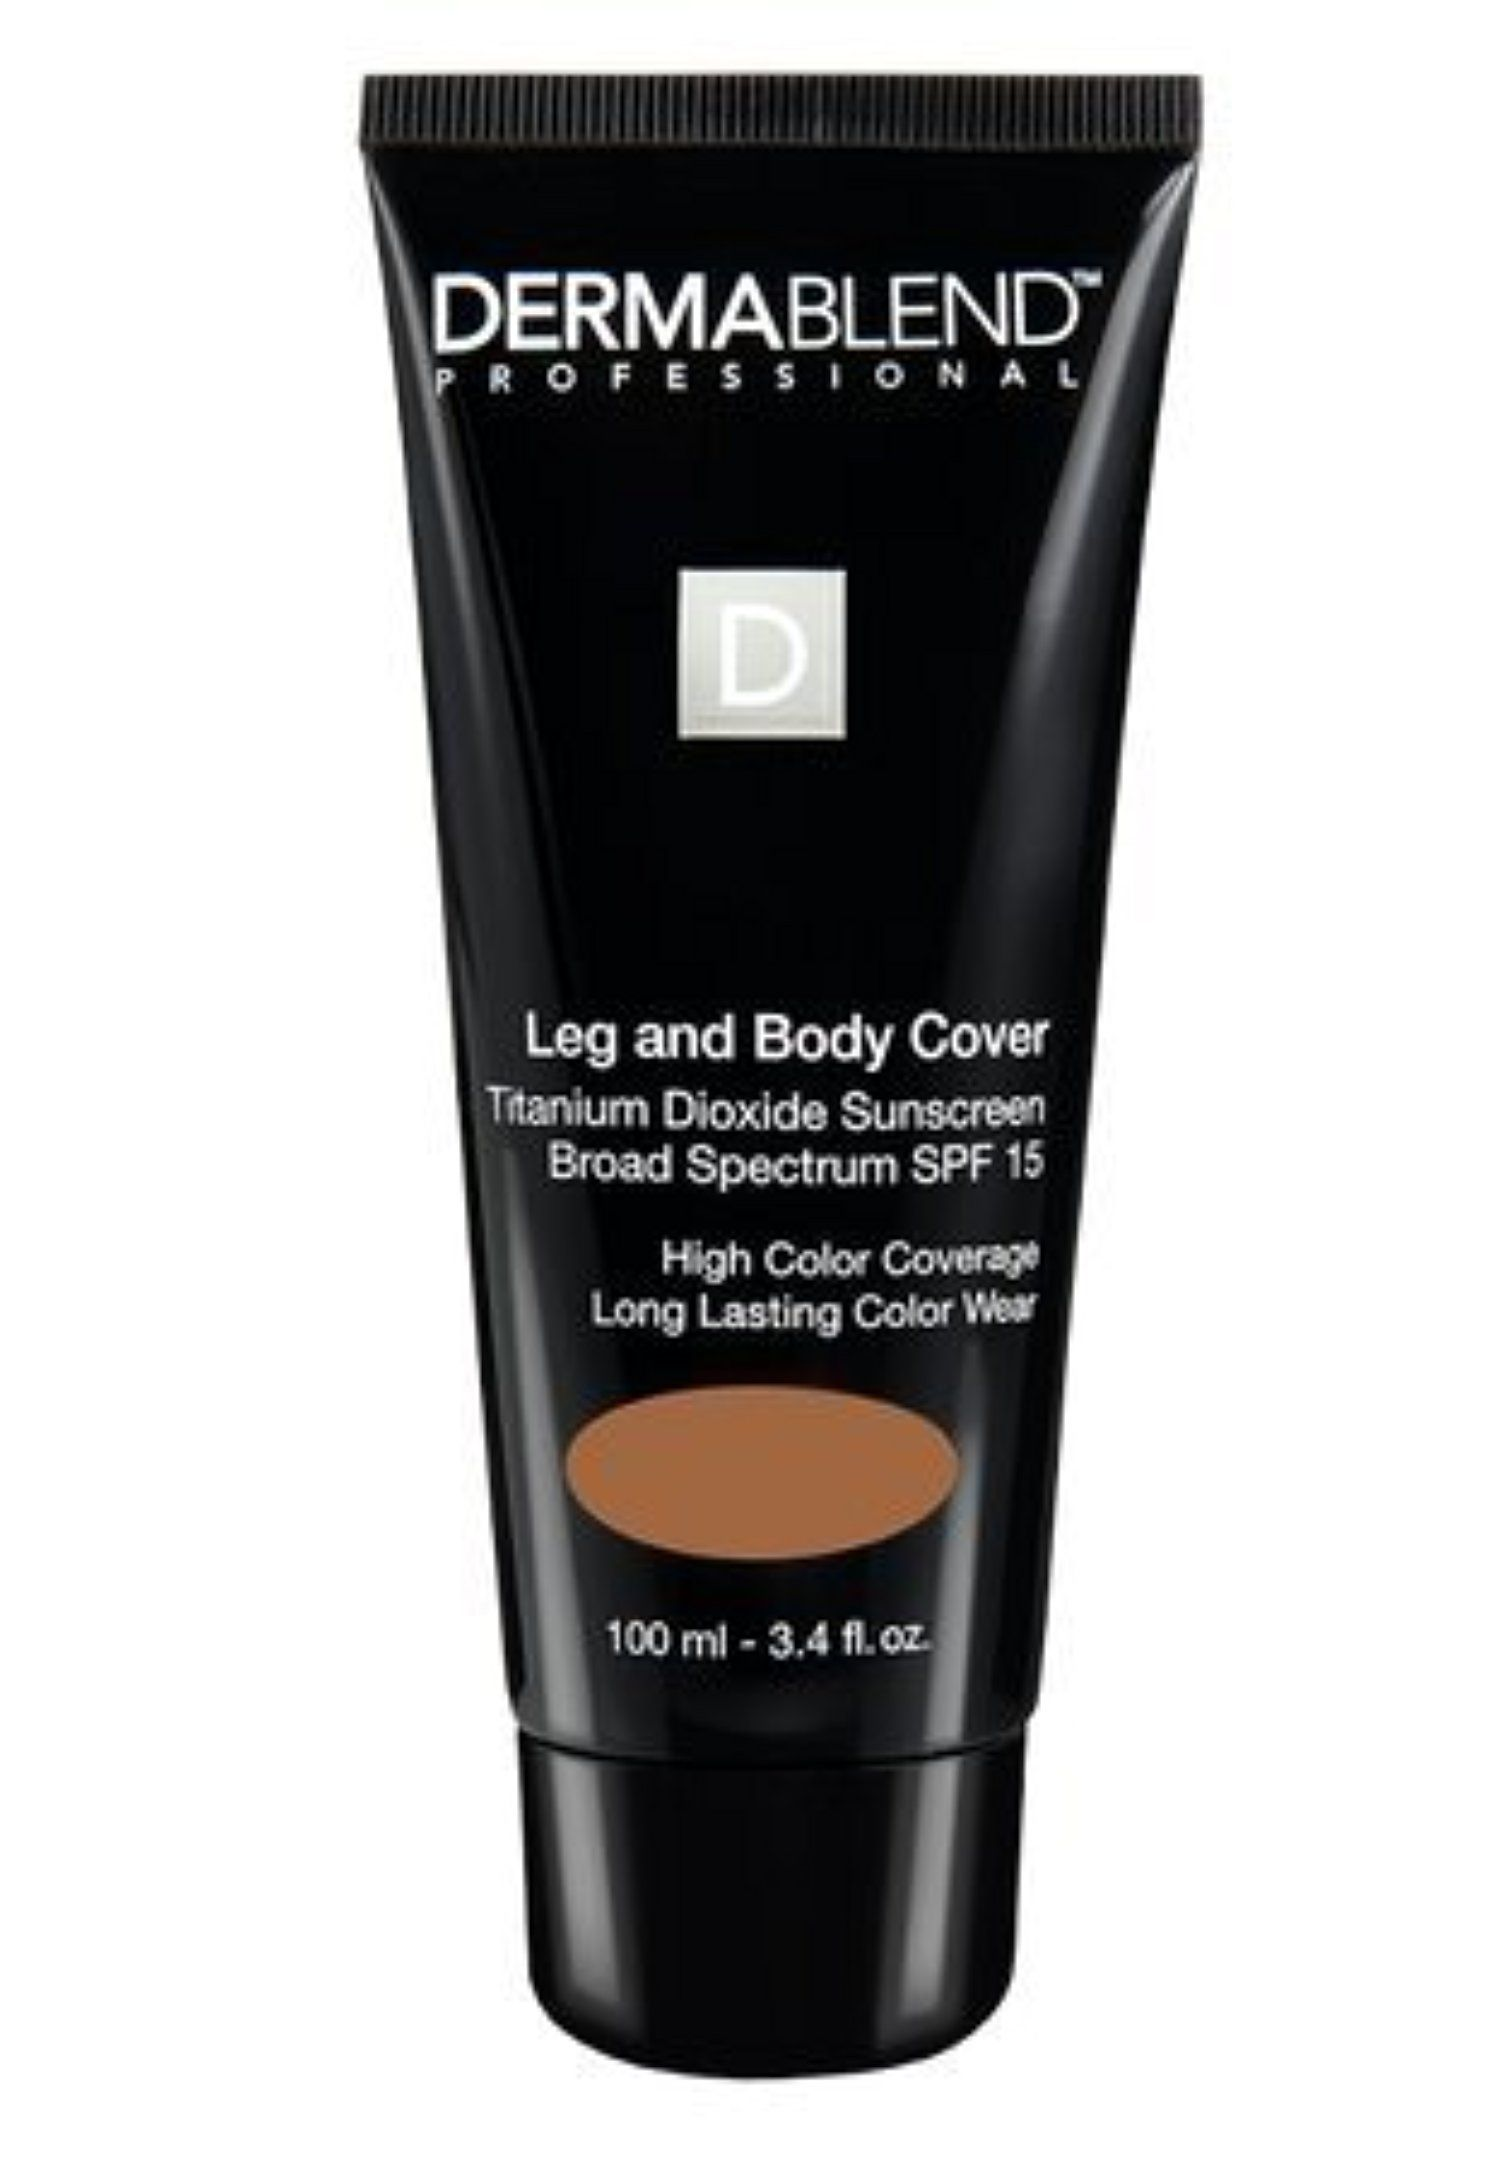 Dermablend Professional Leg & Body Cover Foundation 3.4